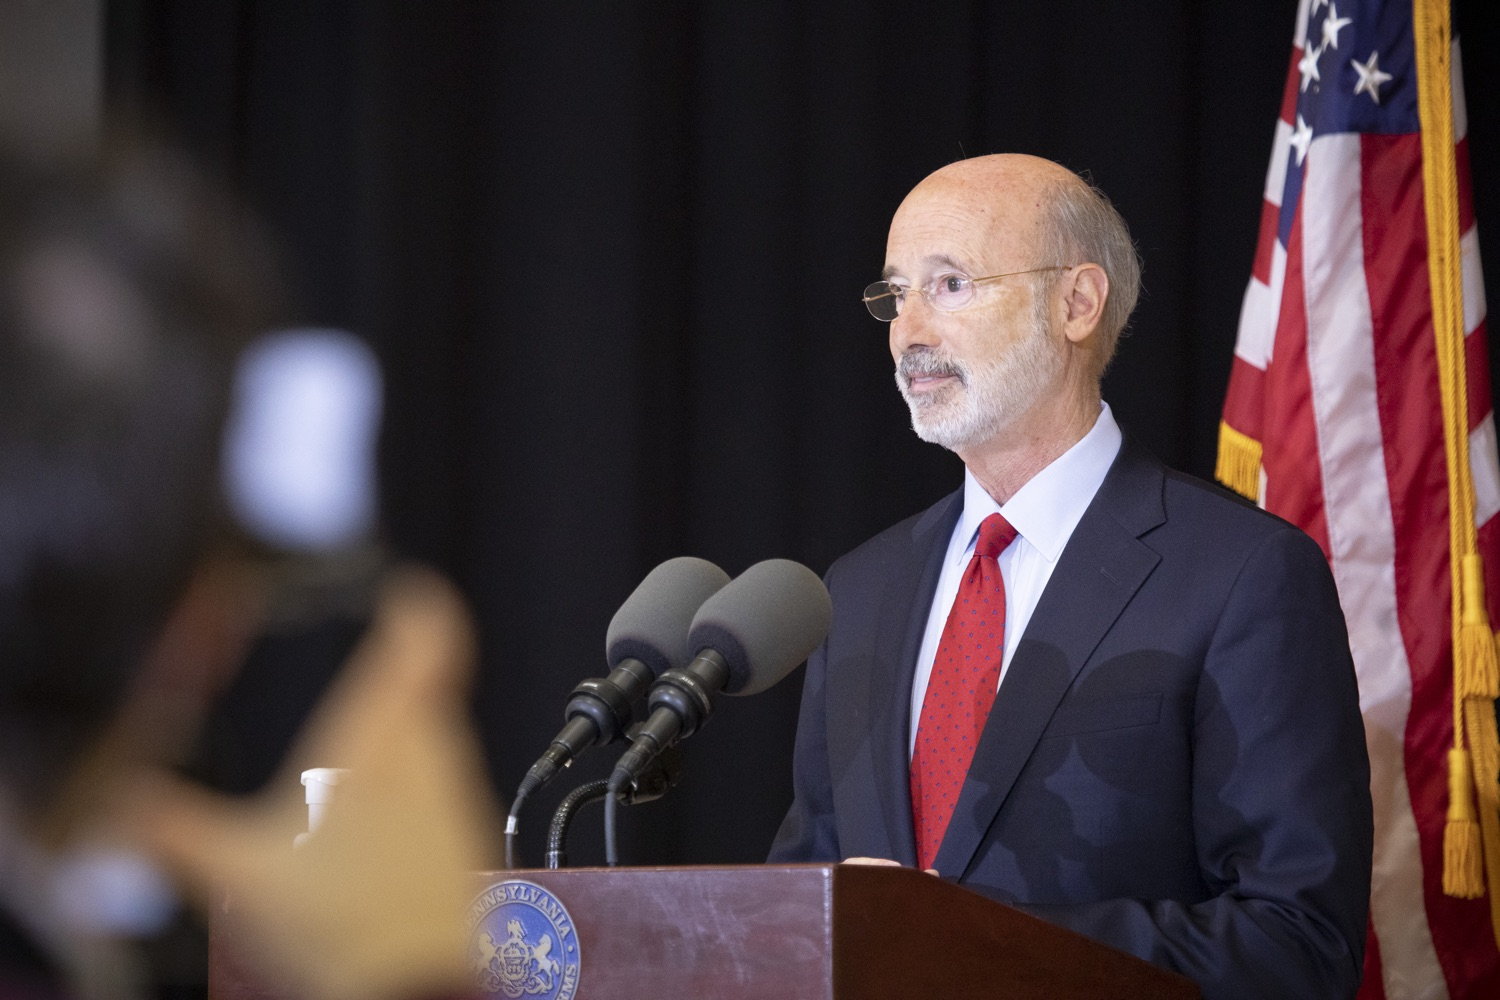 "<a href=""https://filesource.wostreaming.net/commonwealthofpa/photo/18310_gov_adult_use_cannabis_dz_011.jpg"" target=""_blank"">⇣ Download Photo<br></a>Governor Tom Wolf speaks to the press.Governor Tom Wolf visited The Mountain Center in Tobyhanna, Monroe County today to talk about the economic growth potential and restorative justice benefits of legalizing adult-use cannabis, something the state General Assembly has not yet done despite multiple requests from the governor and Lieutenant Governor John Fetterman to take up legislation this fall.  Tobyhanna, PA  October 13, 2020"